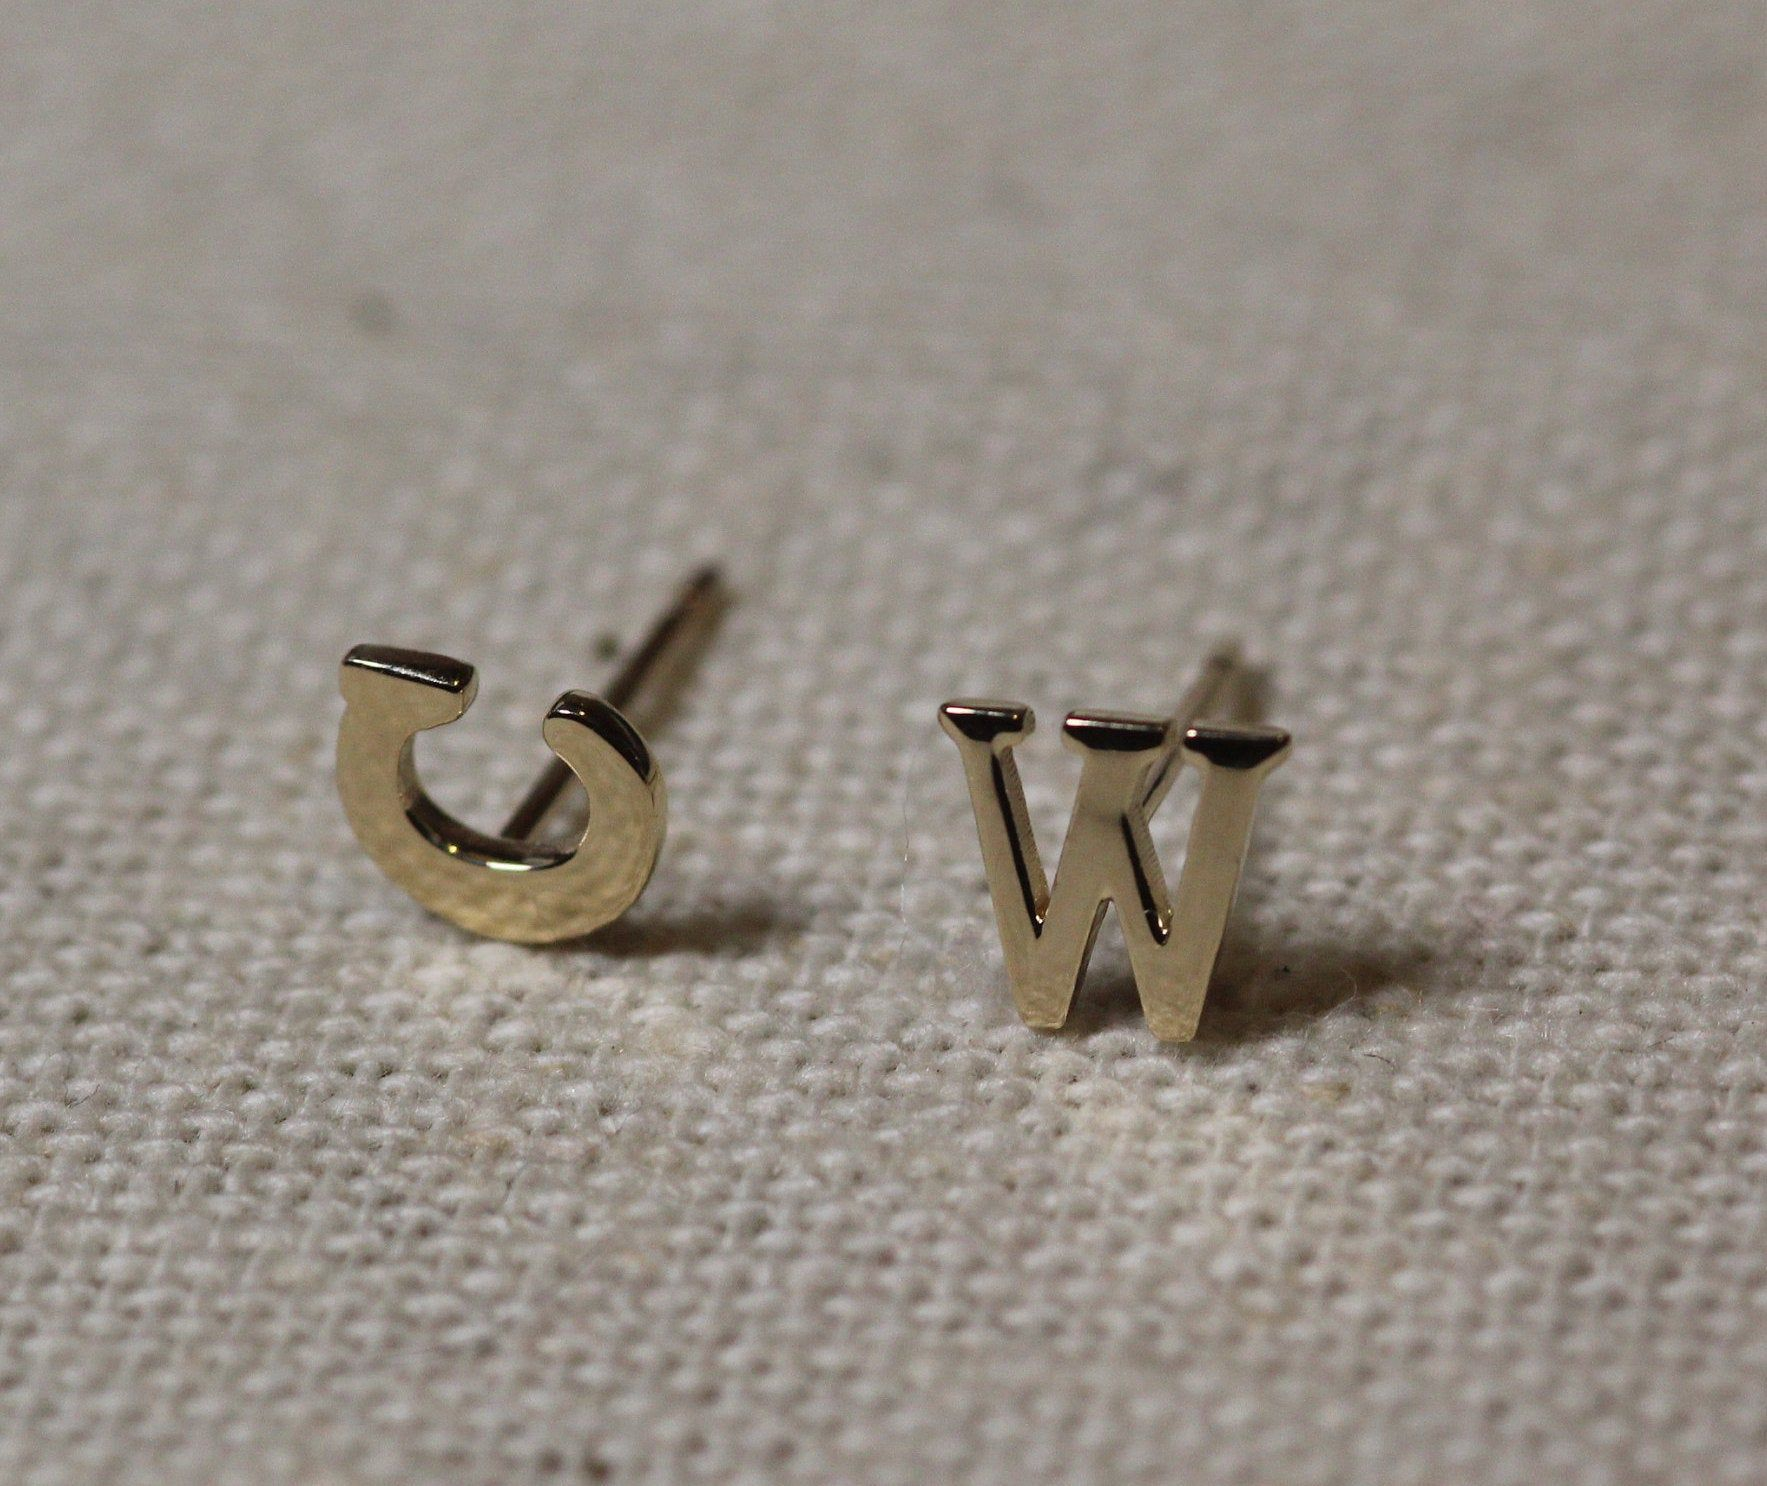 Initial Earrings Gold Tiny Solid 14k Gold Initial Earrings Etsy In 2020 Gold Earrings Threader Earrings Gold Initial Earrings